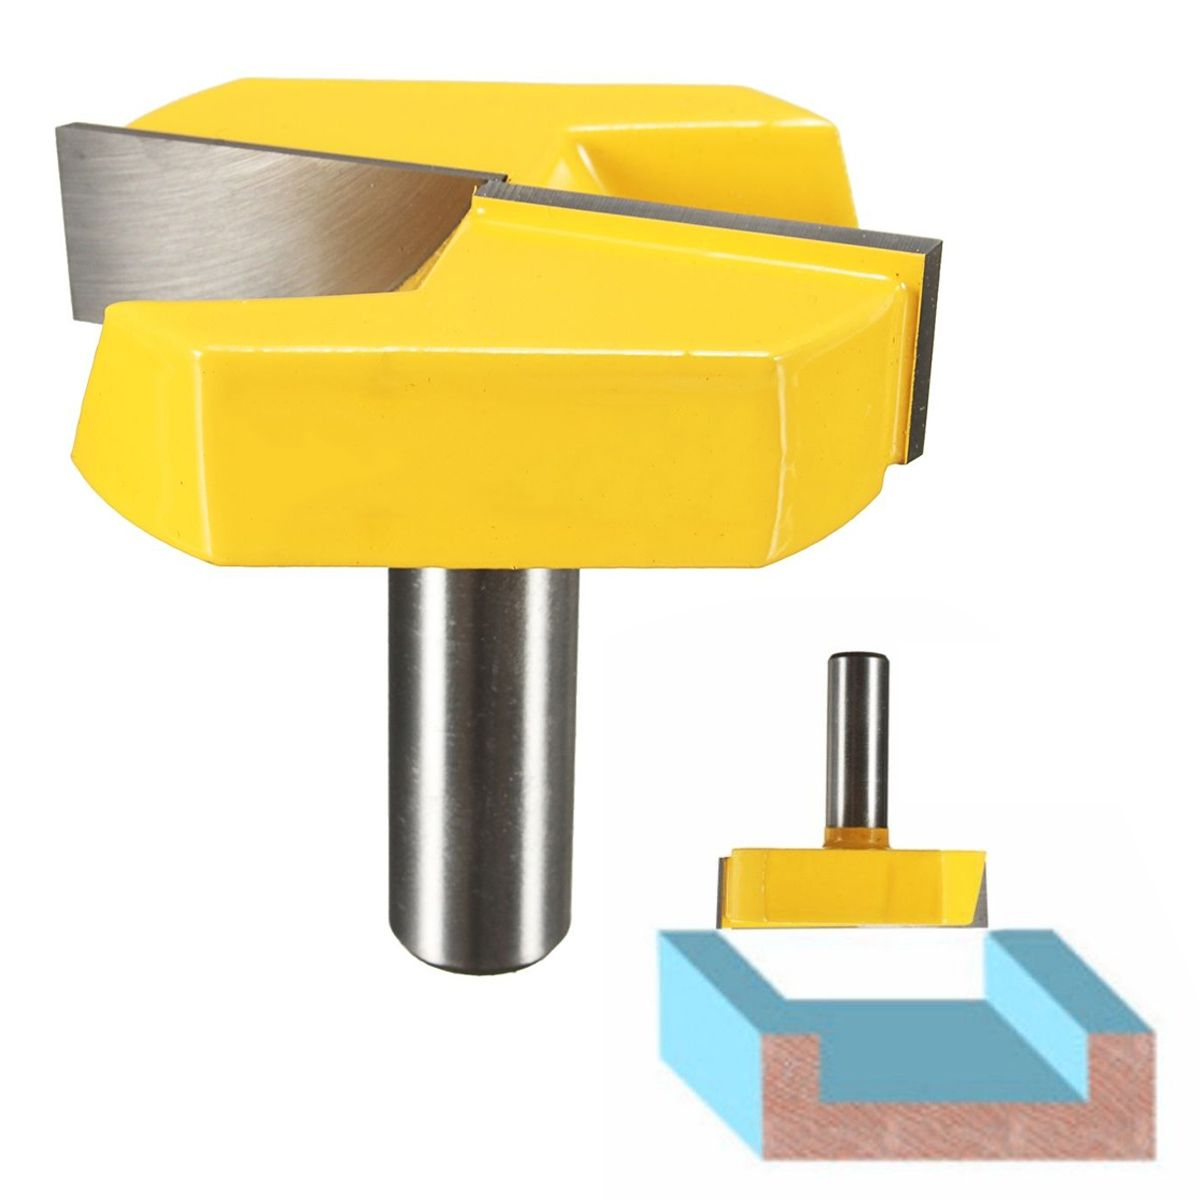 Strong 1/2 Shank 2-1/4 Diameter Bottom Cleaning Router Bit Mayitr Woodworking Router Bits Milling Cutter for MDF Solid Wood